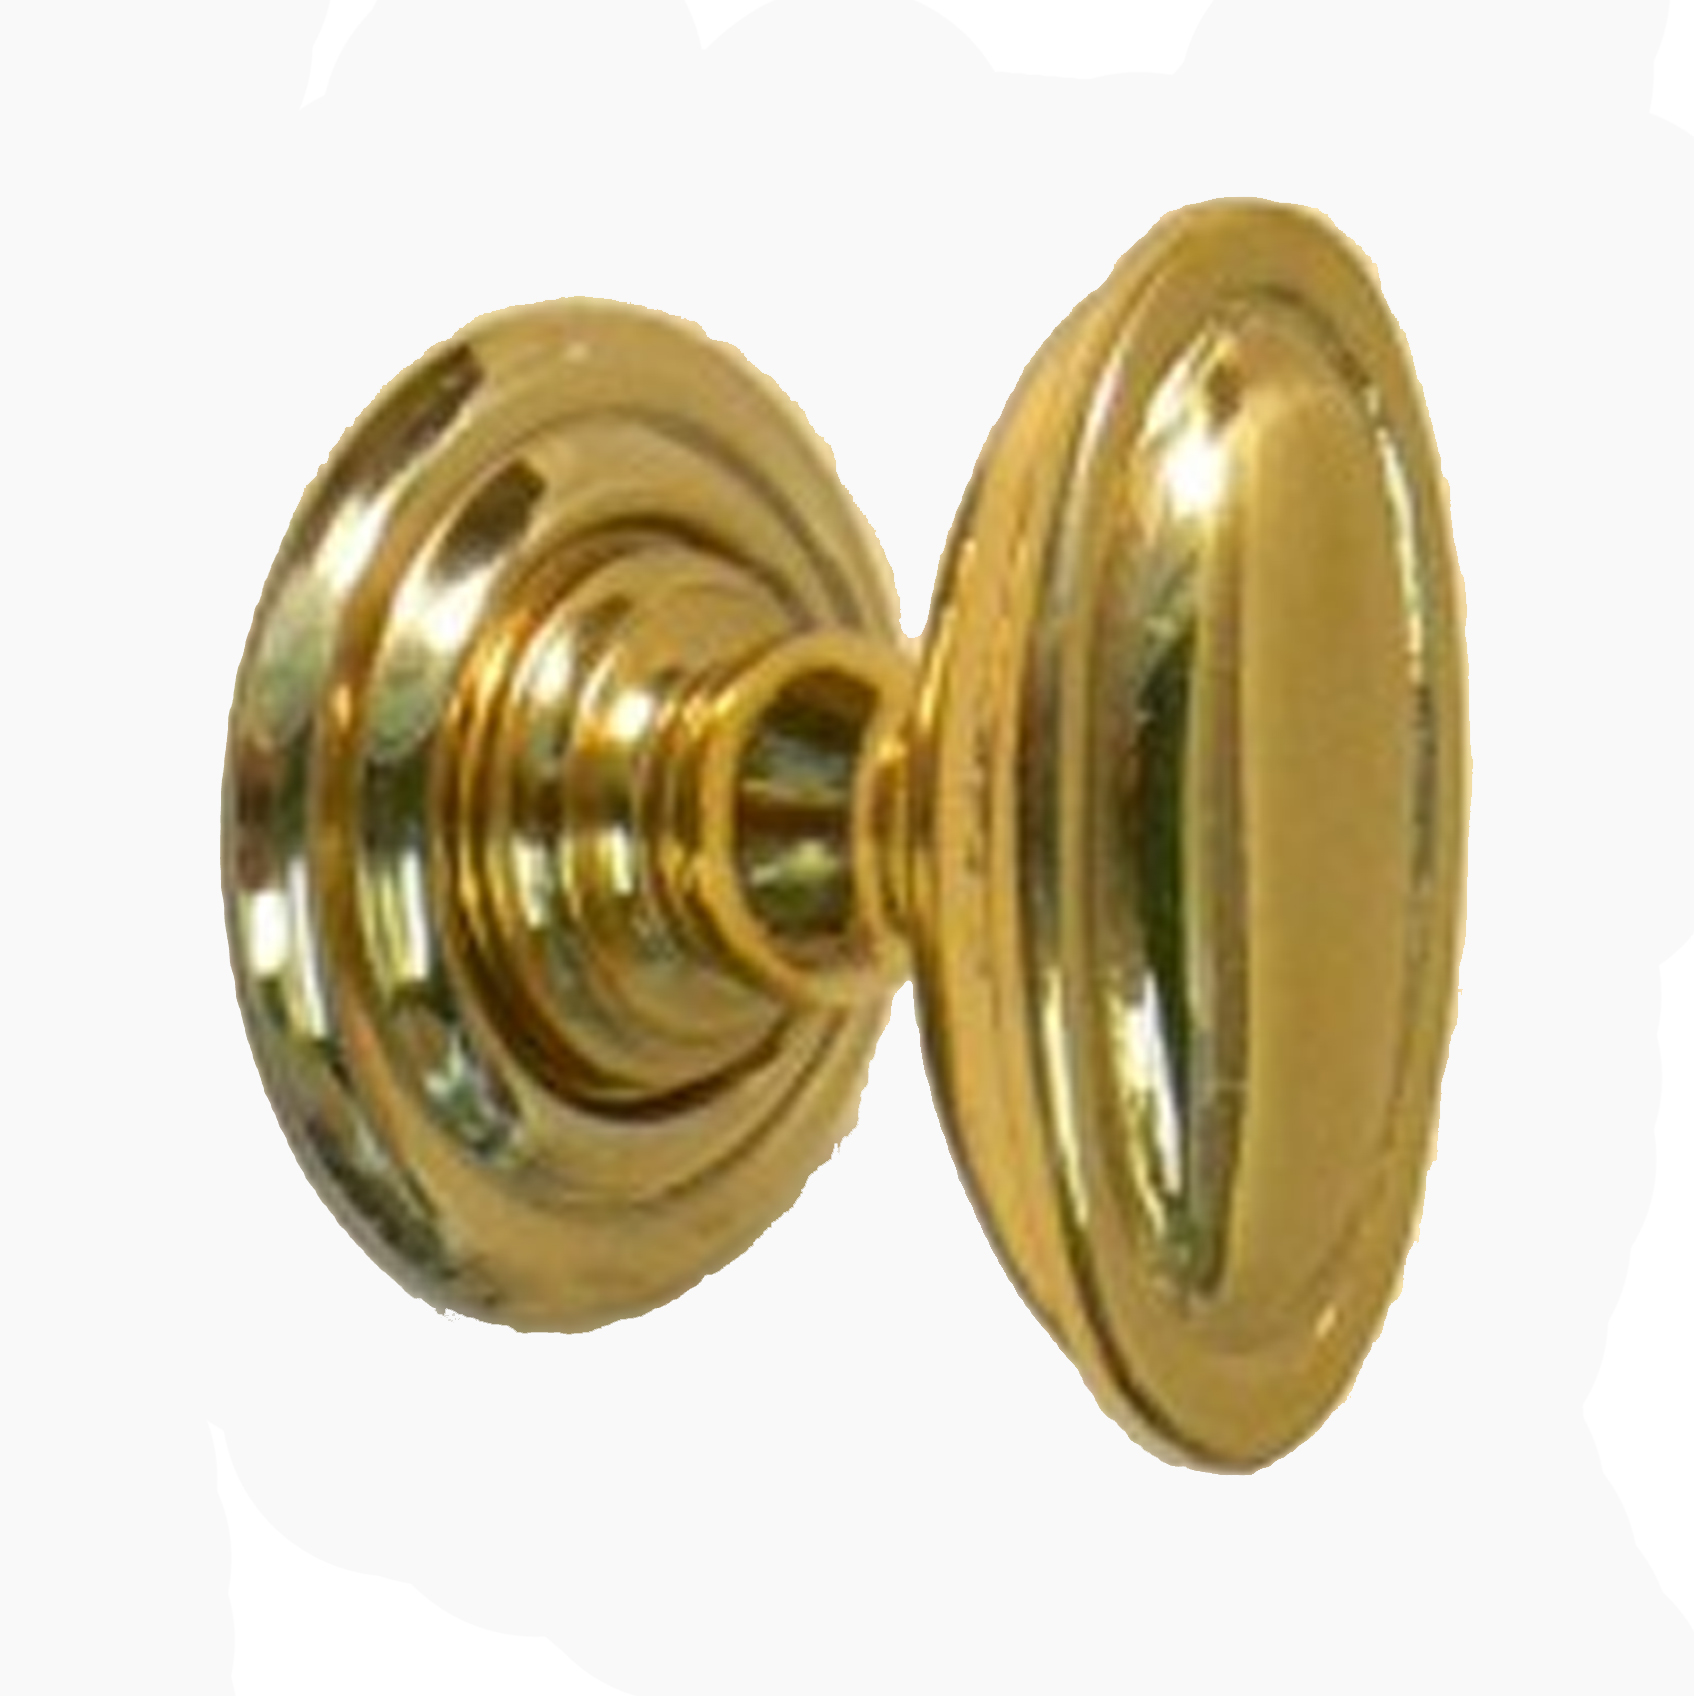 Snobsknobs Edwardian Oval Brass Cupboard Knob Snobsknobs